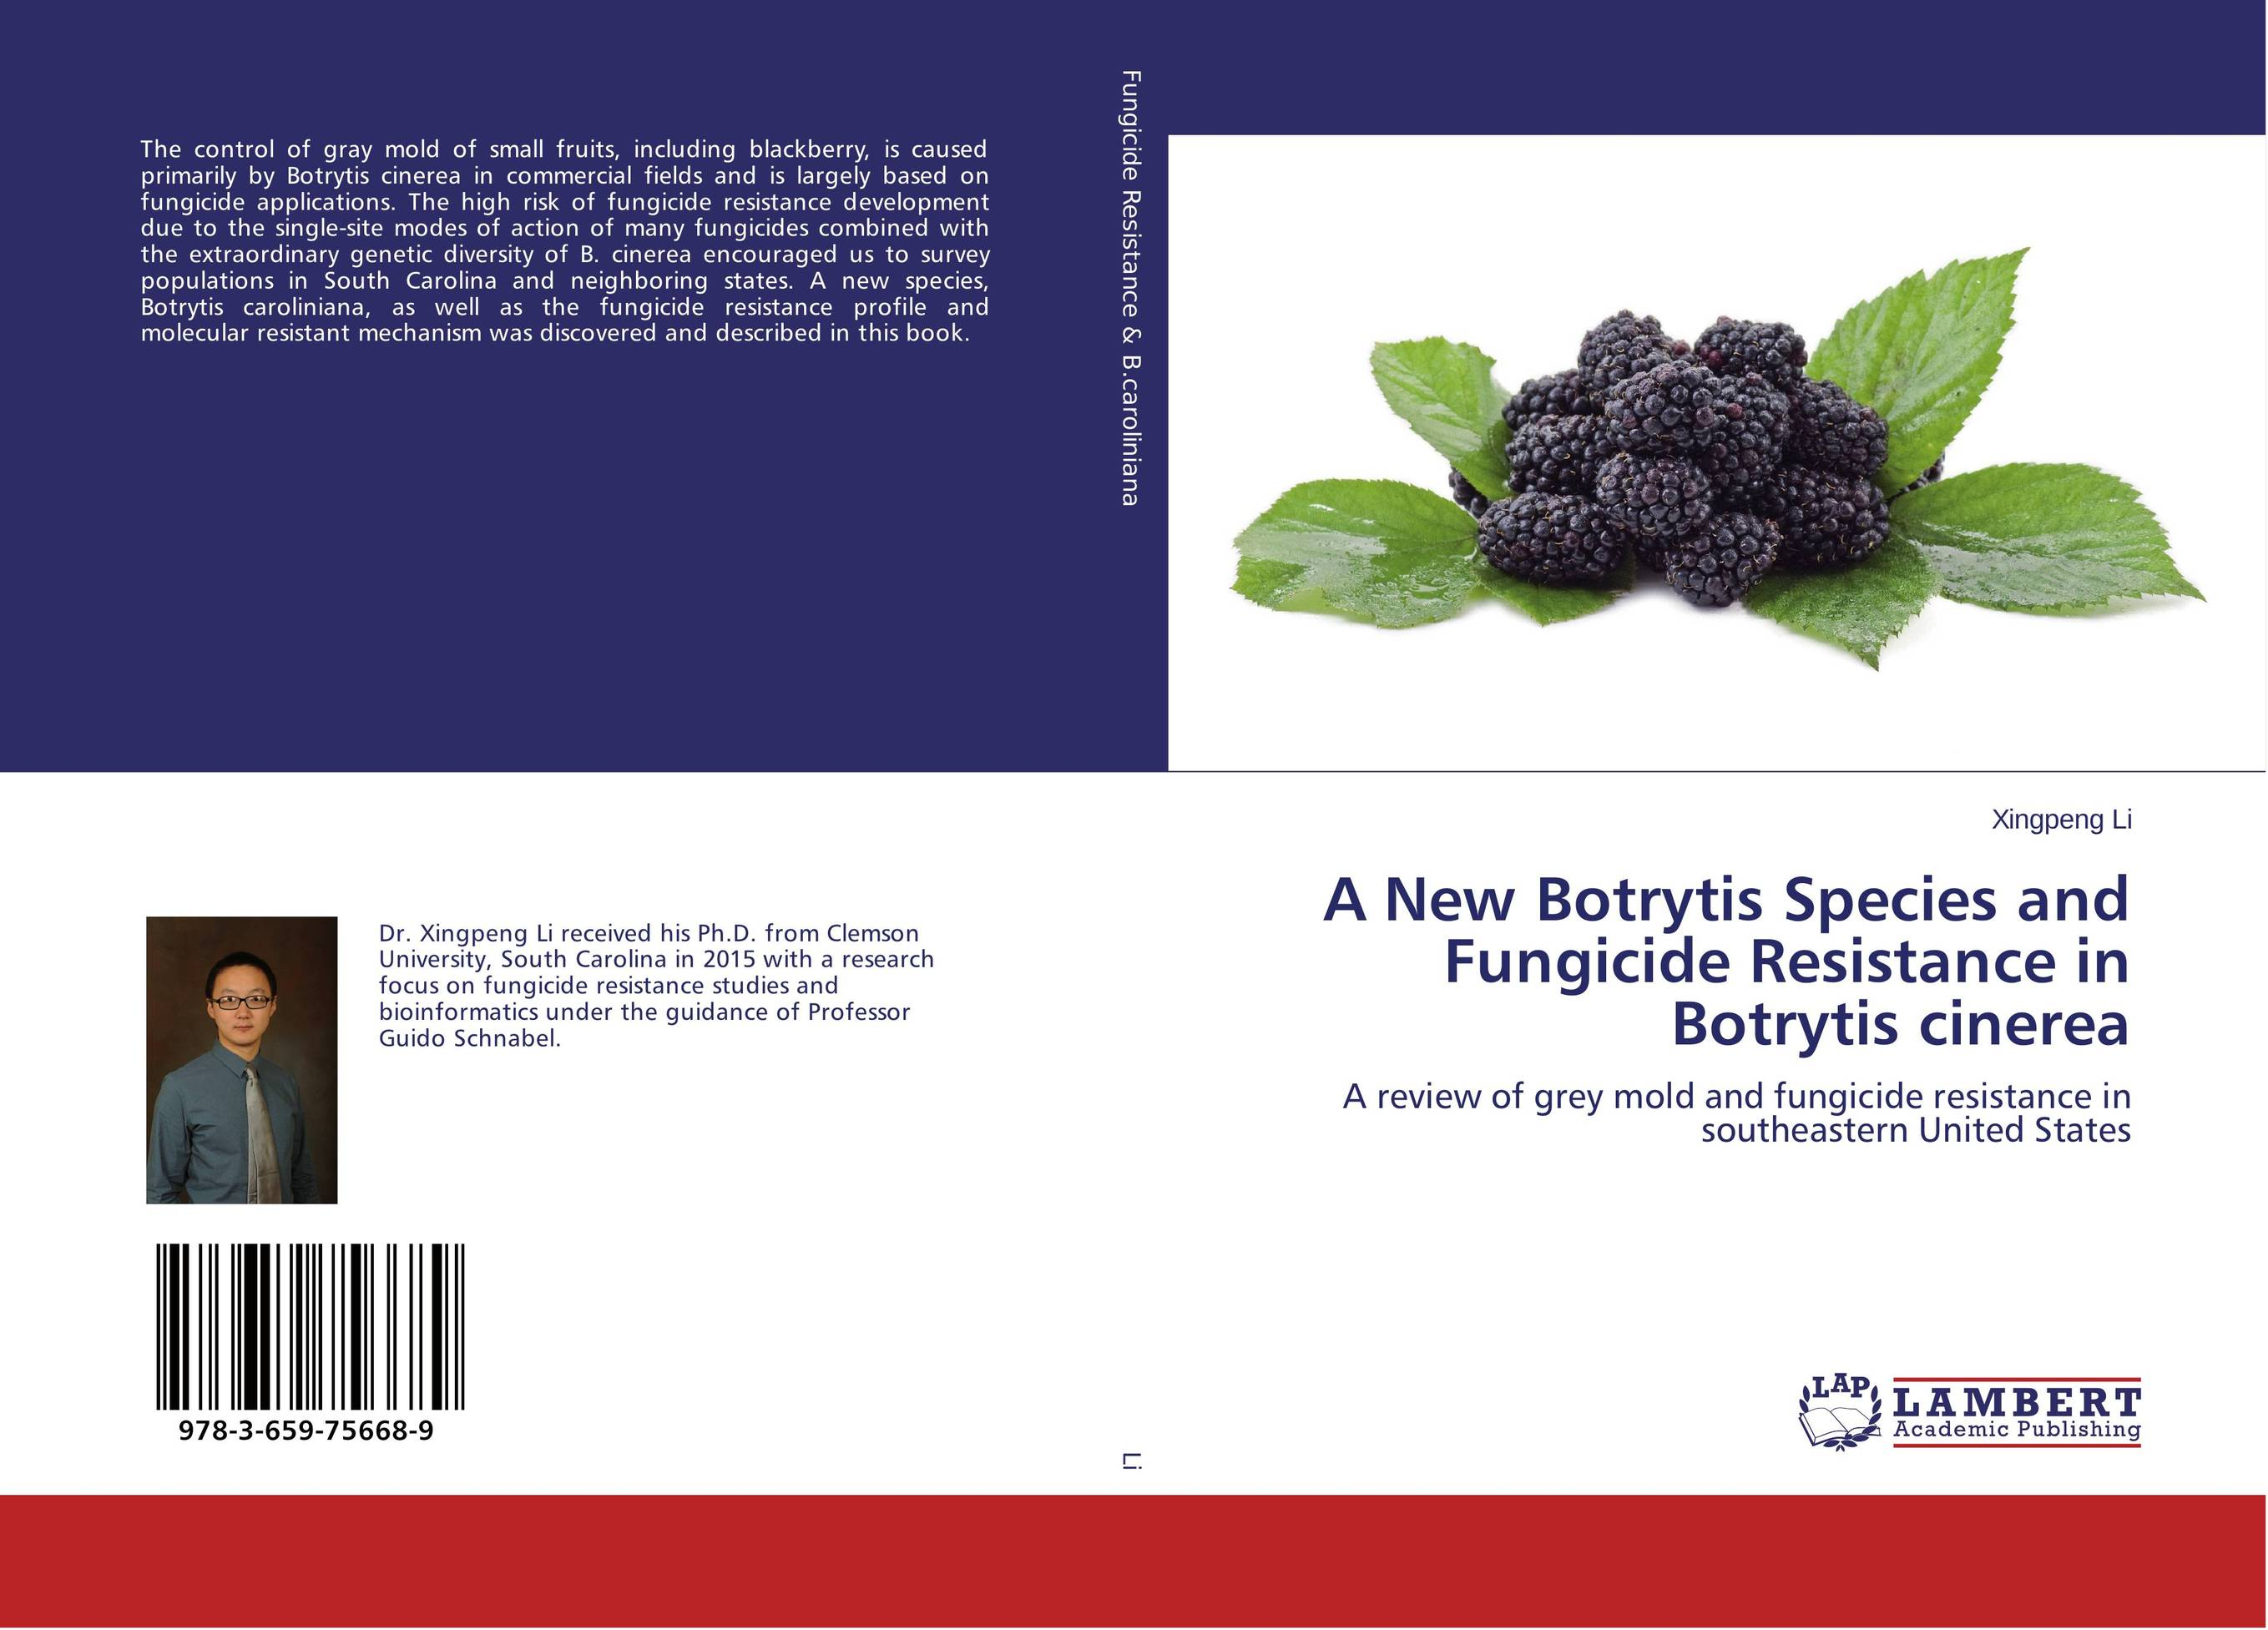 A New Botrytis Species and Fungicide Resistance in Botrytis cinerea genetic diversity in linseed